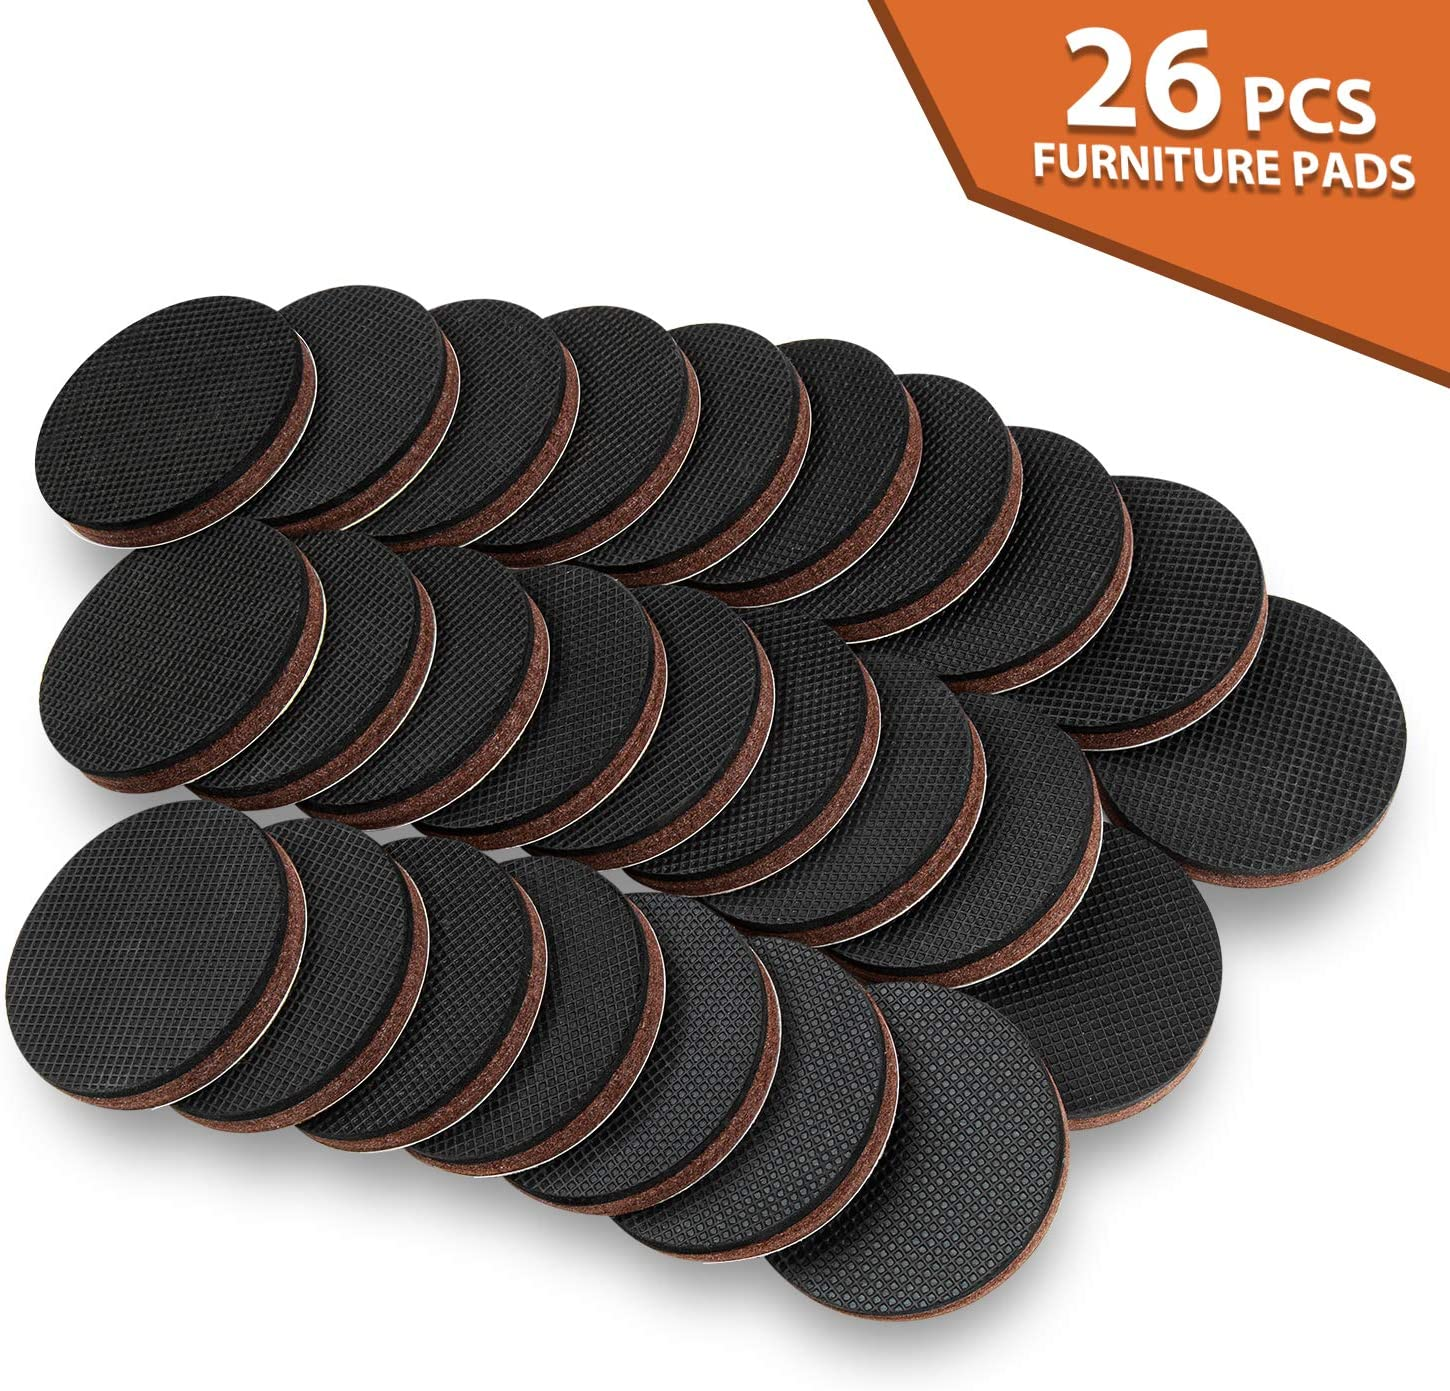 "Non Slip Furniture Pads 26Pcs 2"" Furniture Grippers Self Adhesive Non Skid Furniture Pads, Anti Slip Rubber Pads for Furniture Legs, Furniture Stopper Floor Protector for Hardwood Floor"